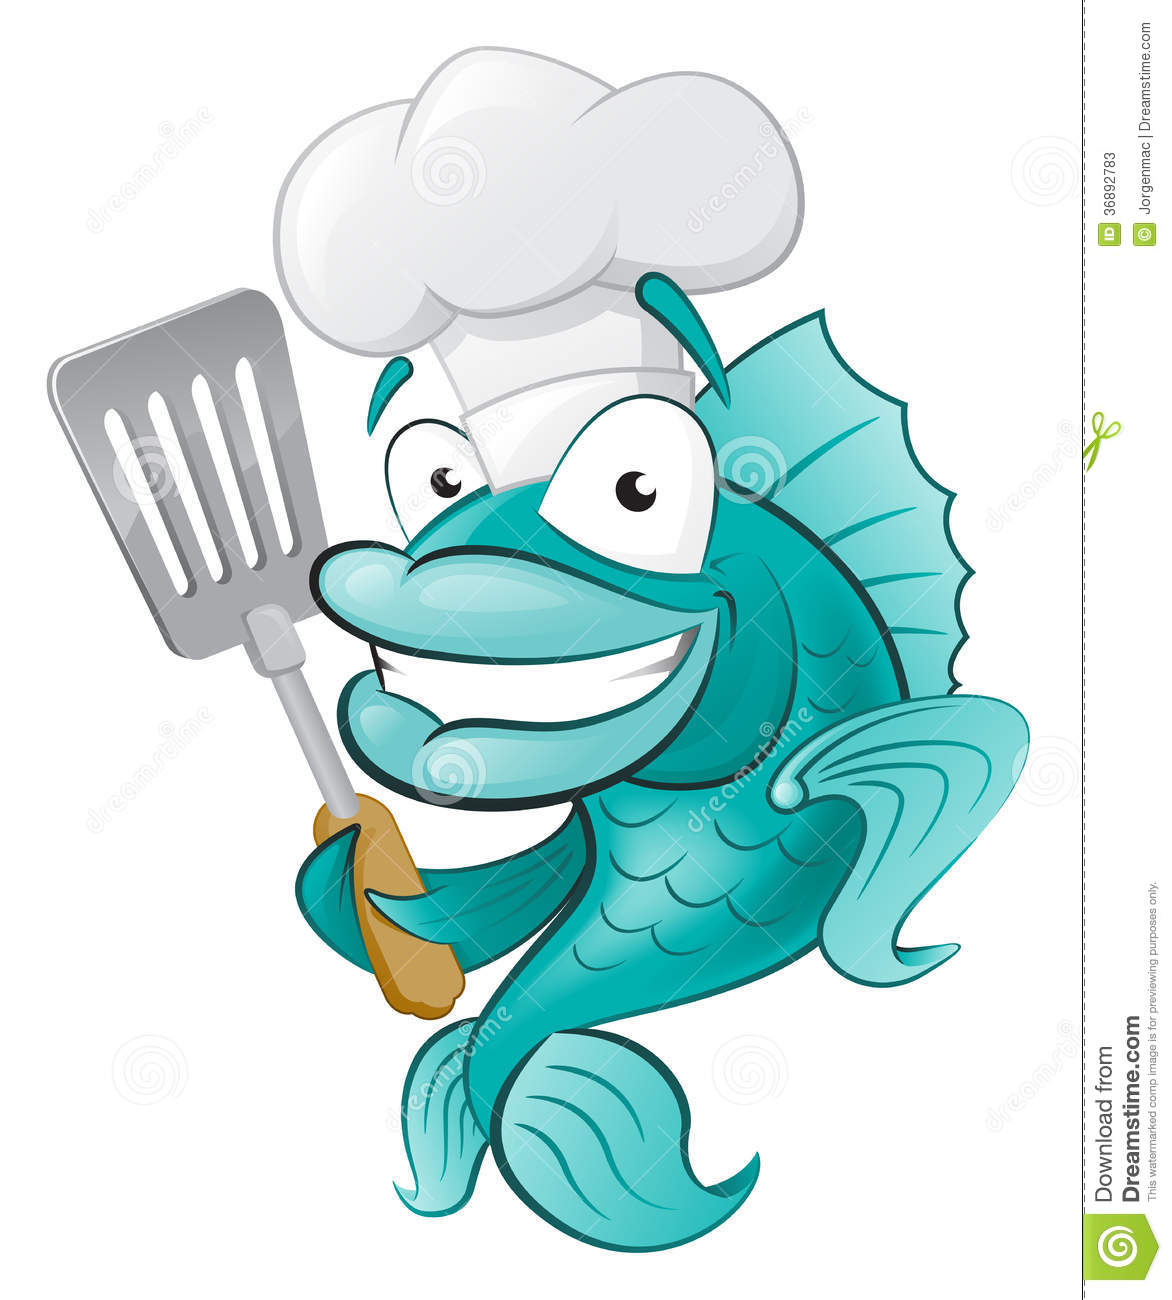 Great Illustration Of A Cute Cartoon Cod Fish Chef Holding A Frying